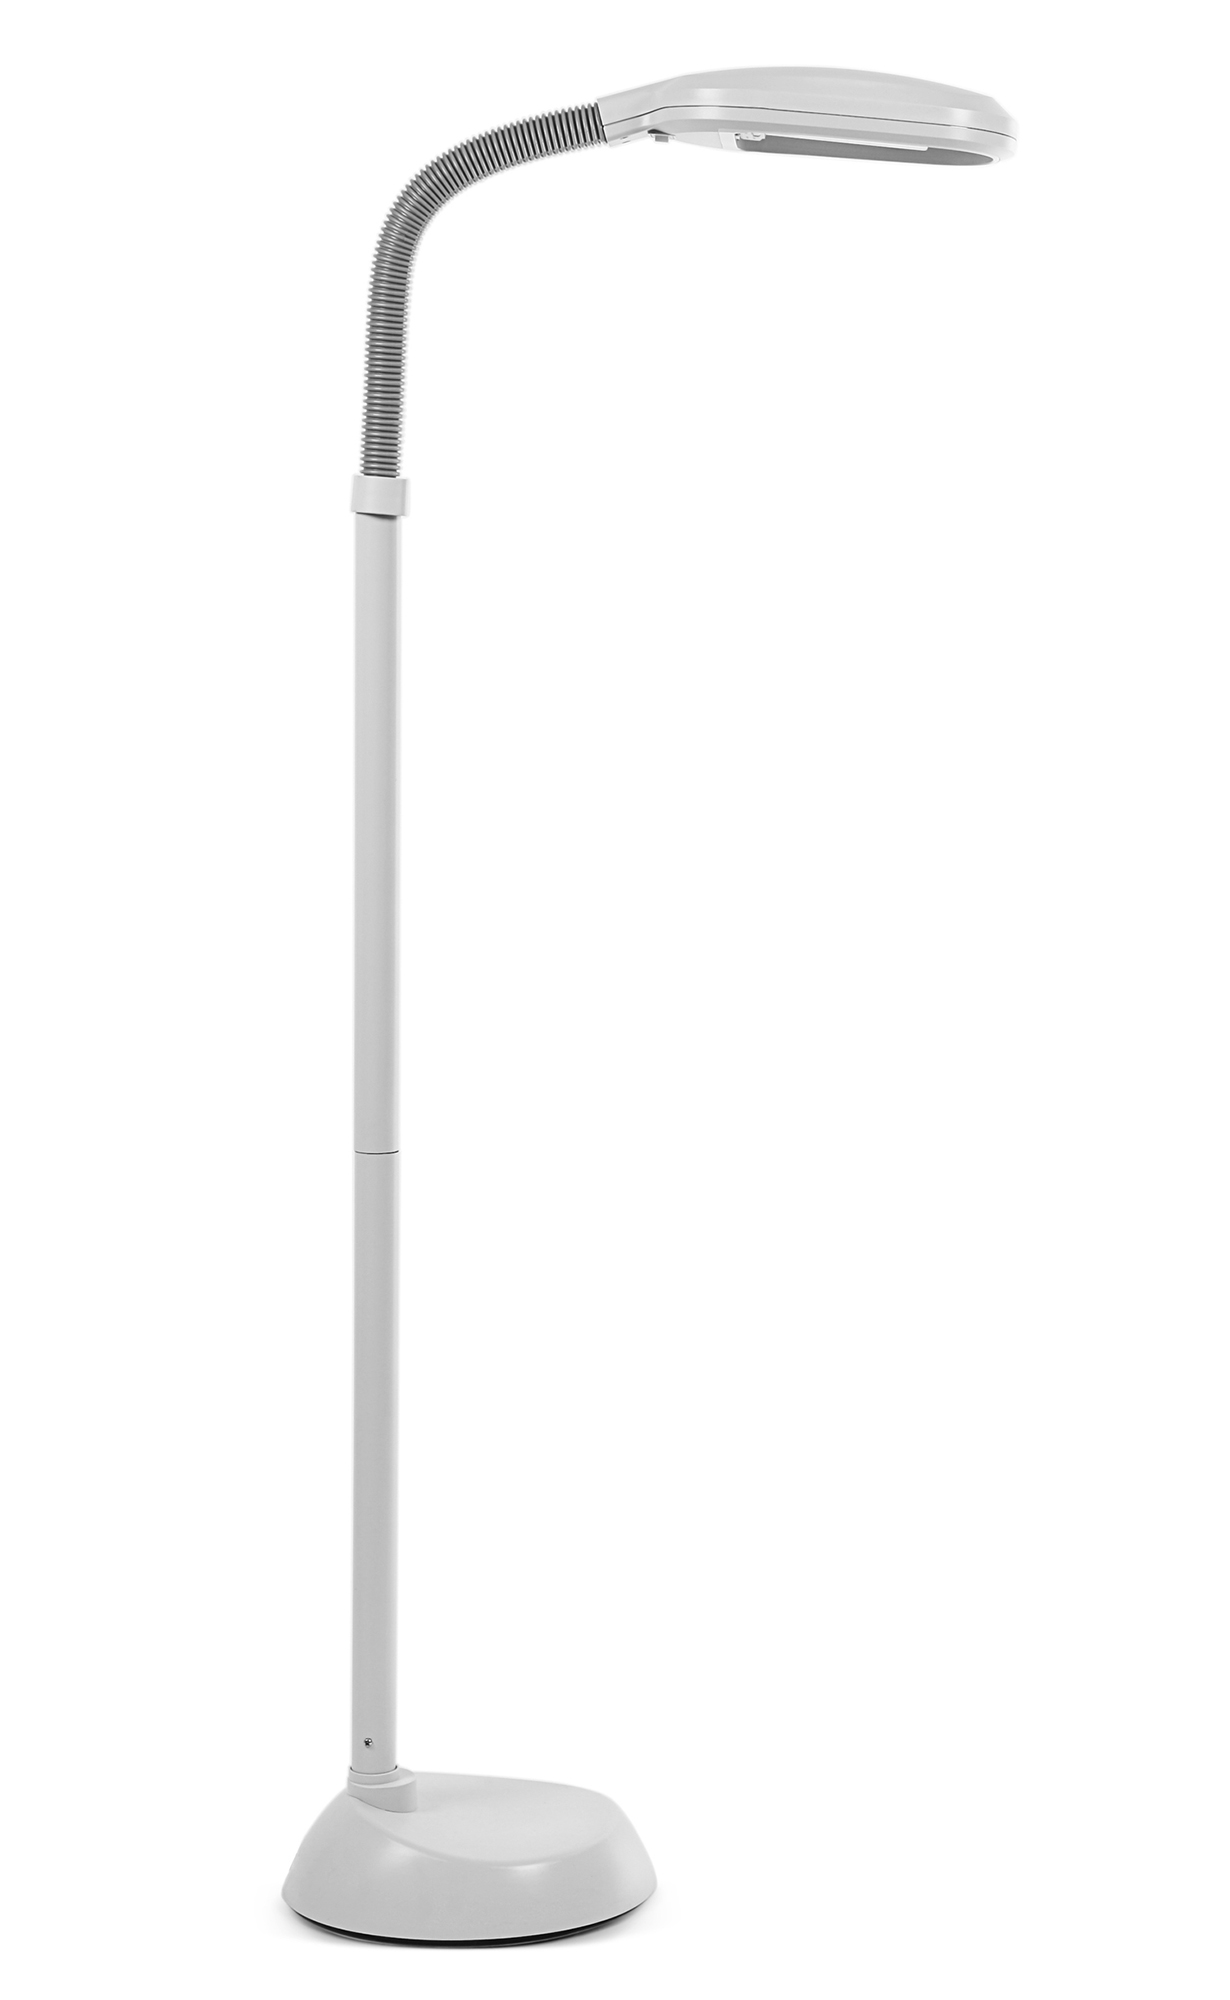 Kenley Natural Daylight Floor Standing Lamp High Vision Reading ...